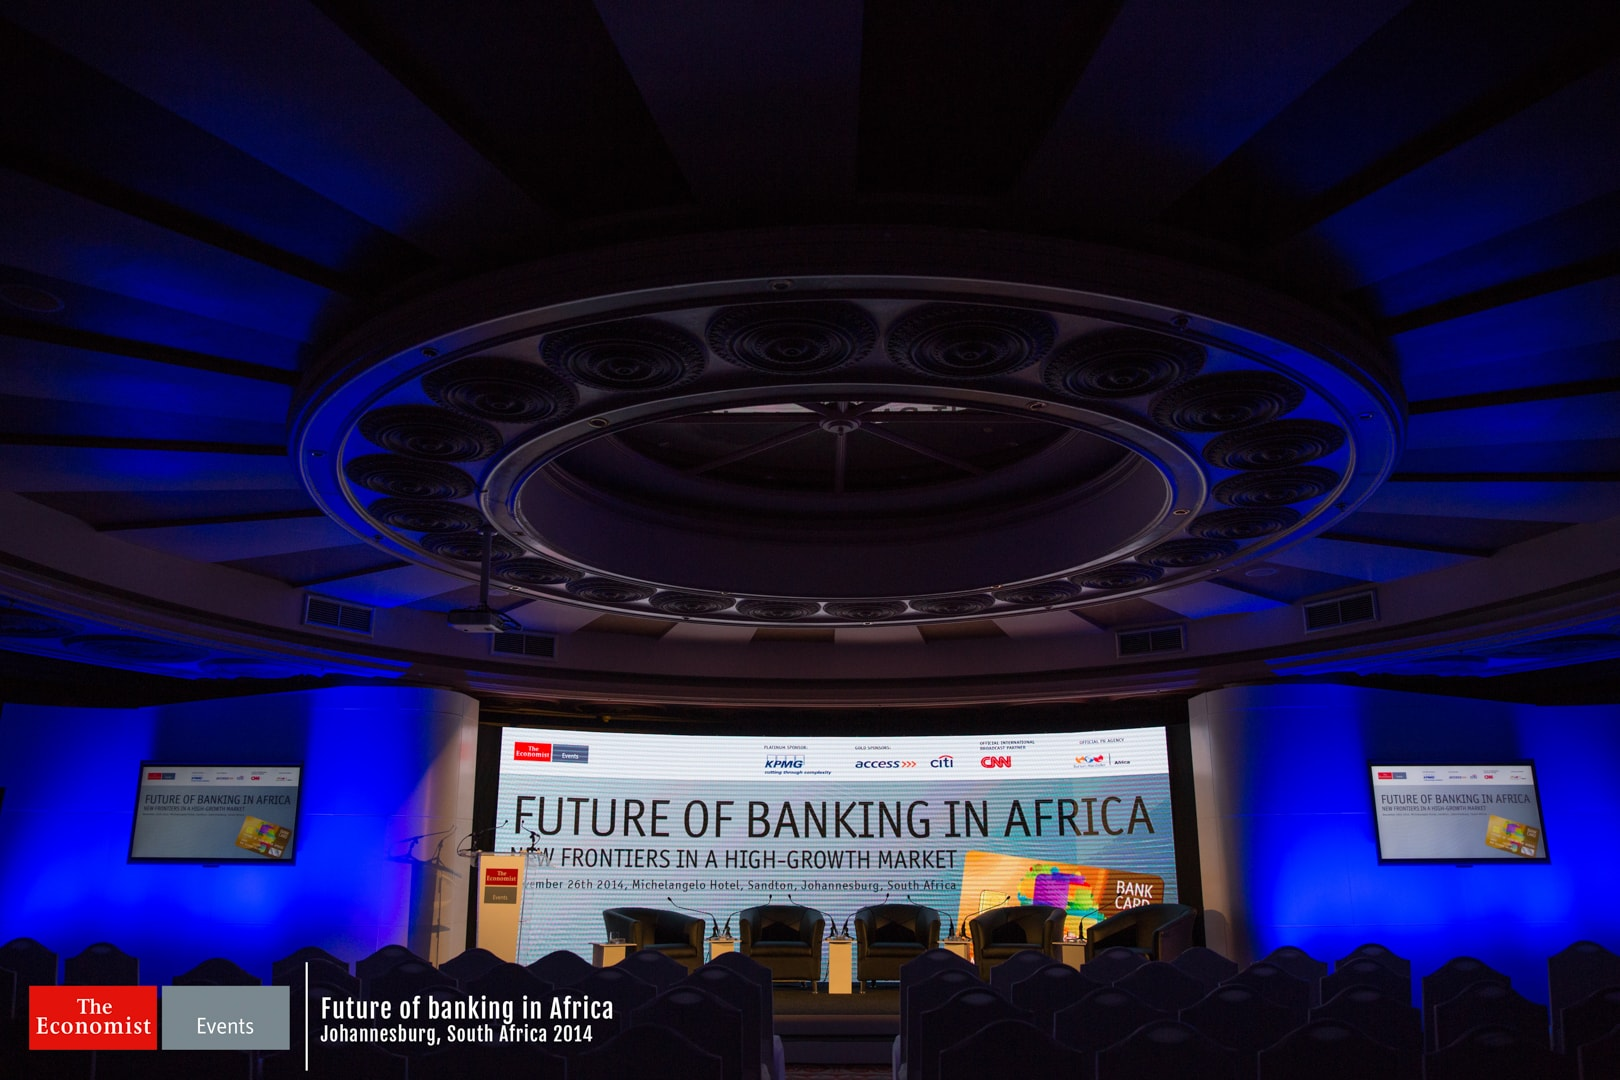 Future of Banking in Africa Event Photography